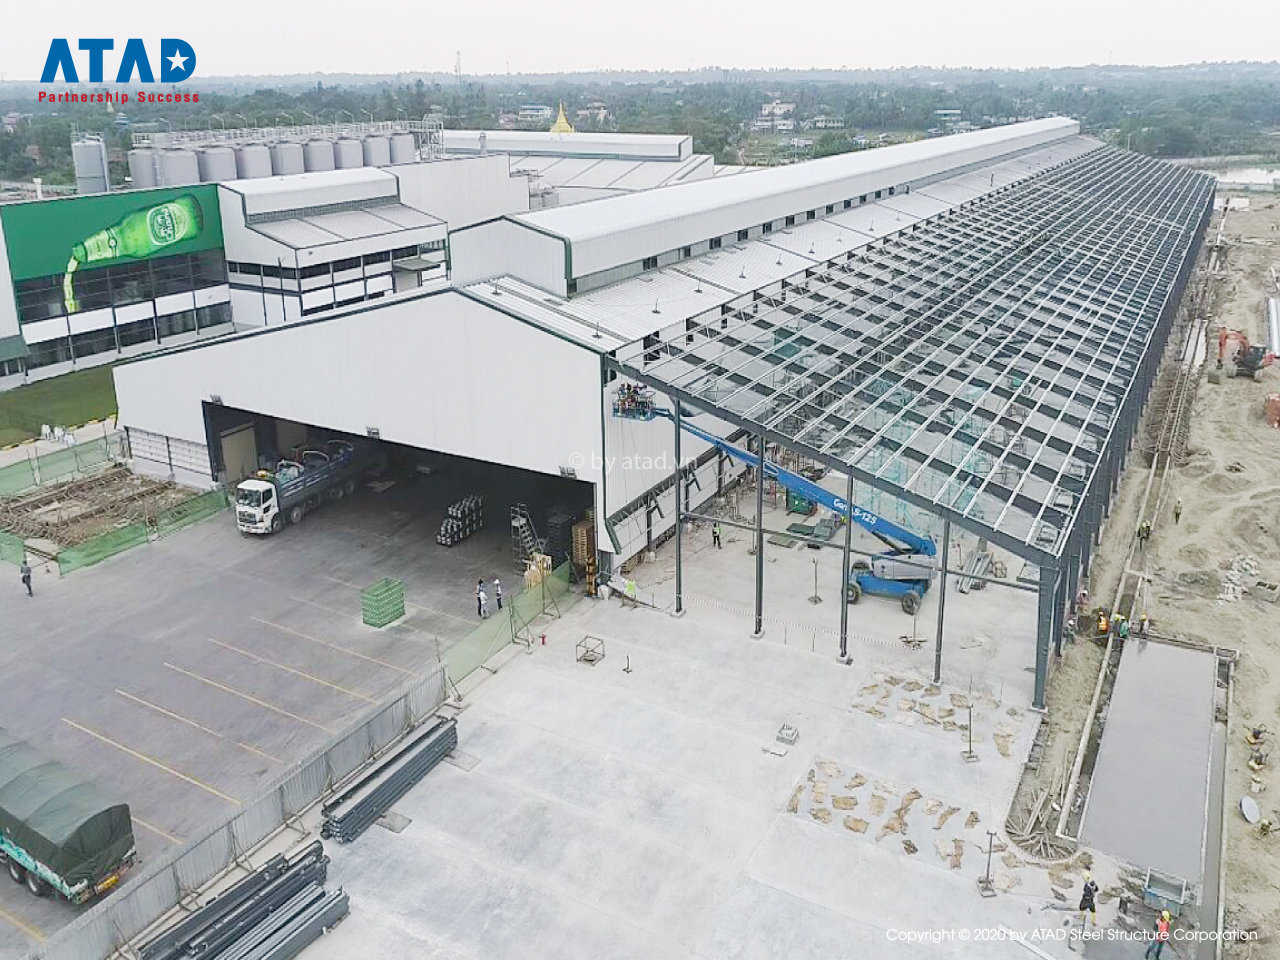 ATAD continues to implement Emerald Brewery Expansion project, Myanmar